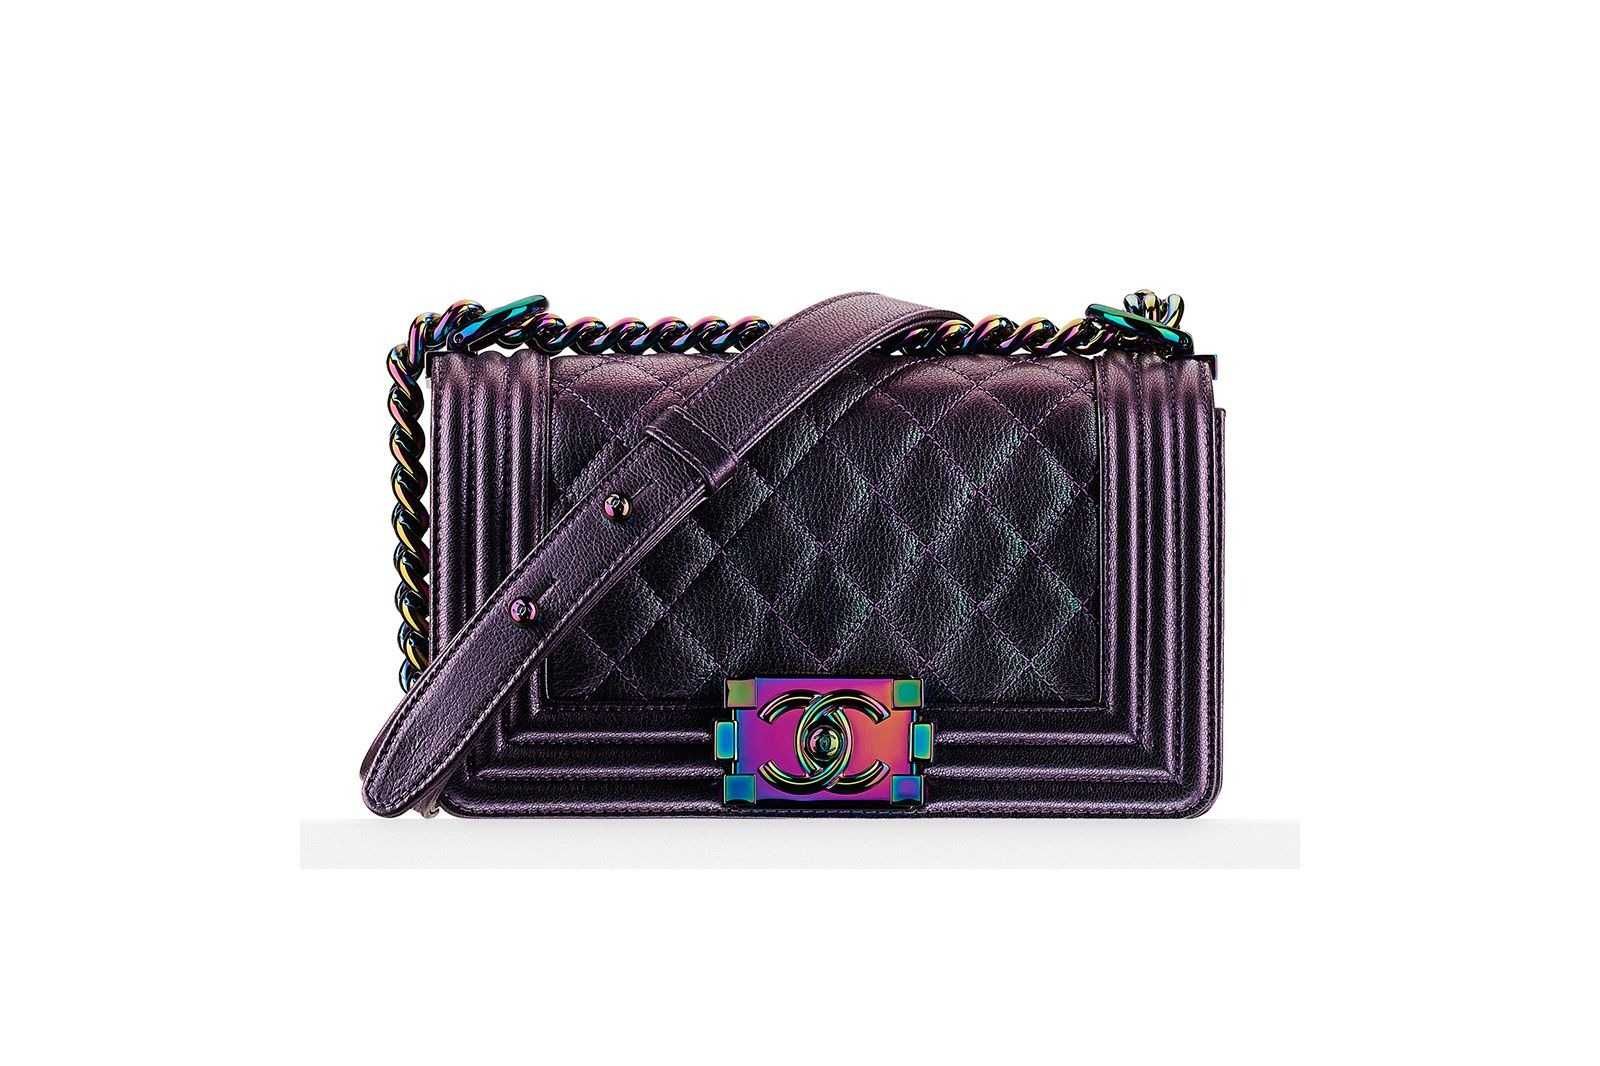 CHANEL IRIDESCENT SMALL BOY BAG $4,300 USD